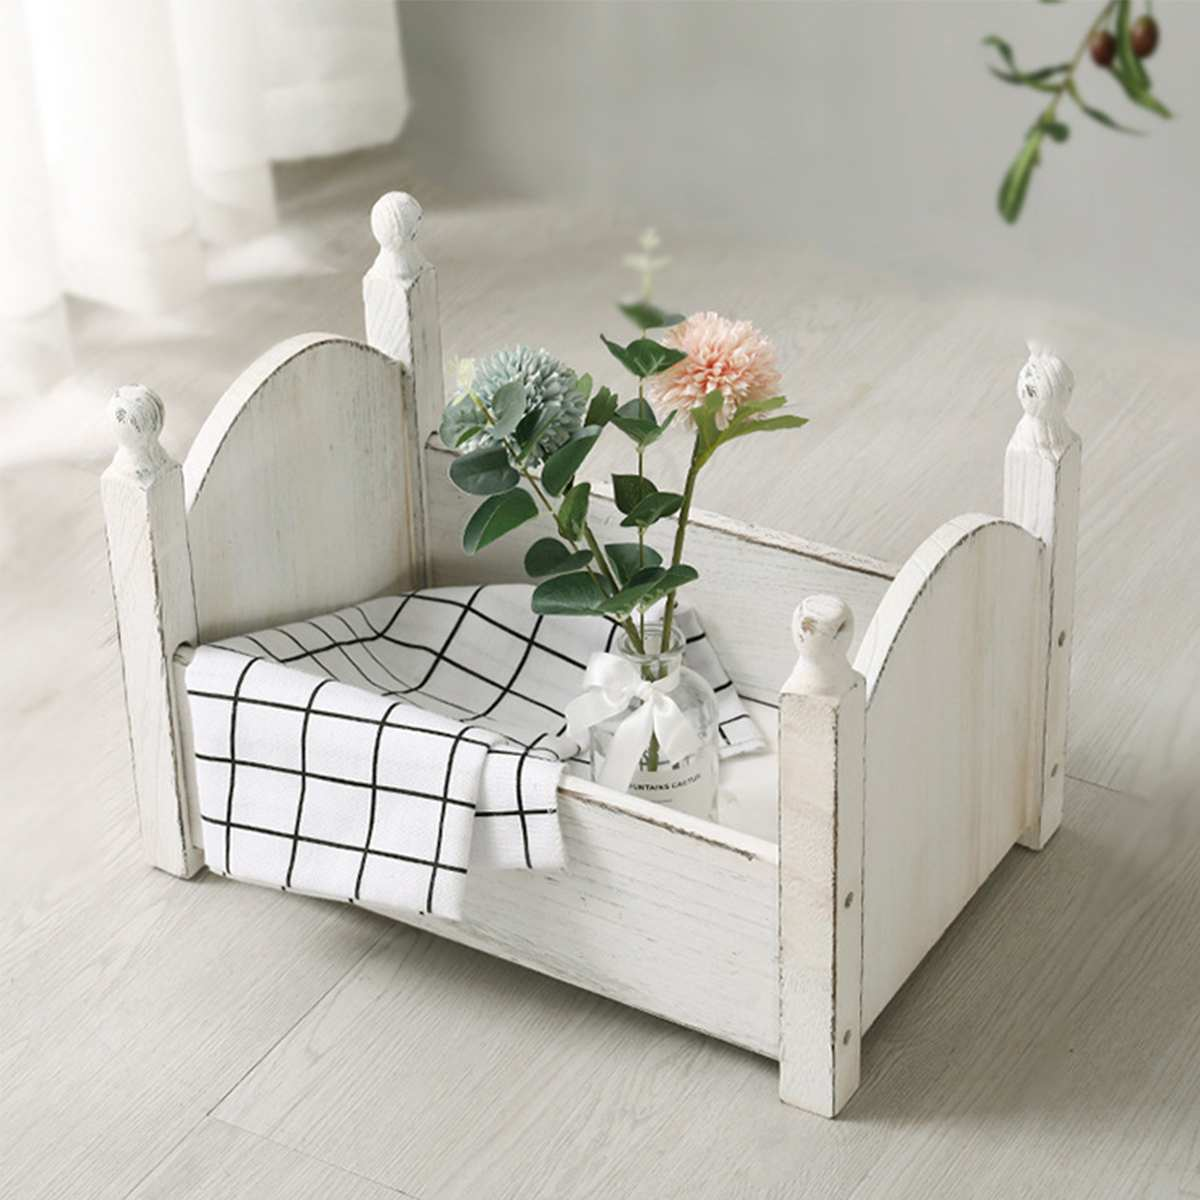 Retro Wooden Bed For Newborn Photography Props Baby Cribs Small Bed Basket Sofa Crib Photo Studio Photography Baby Photo Gift